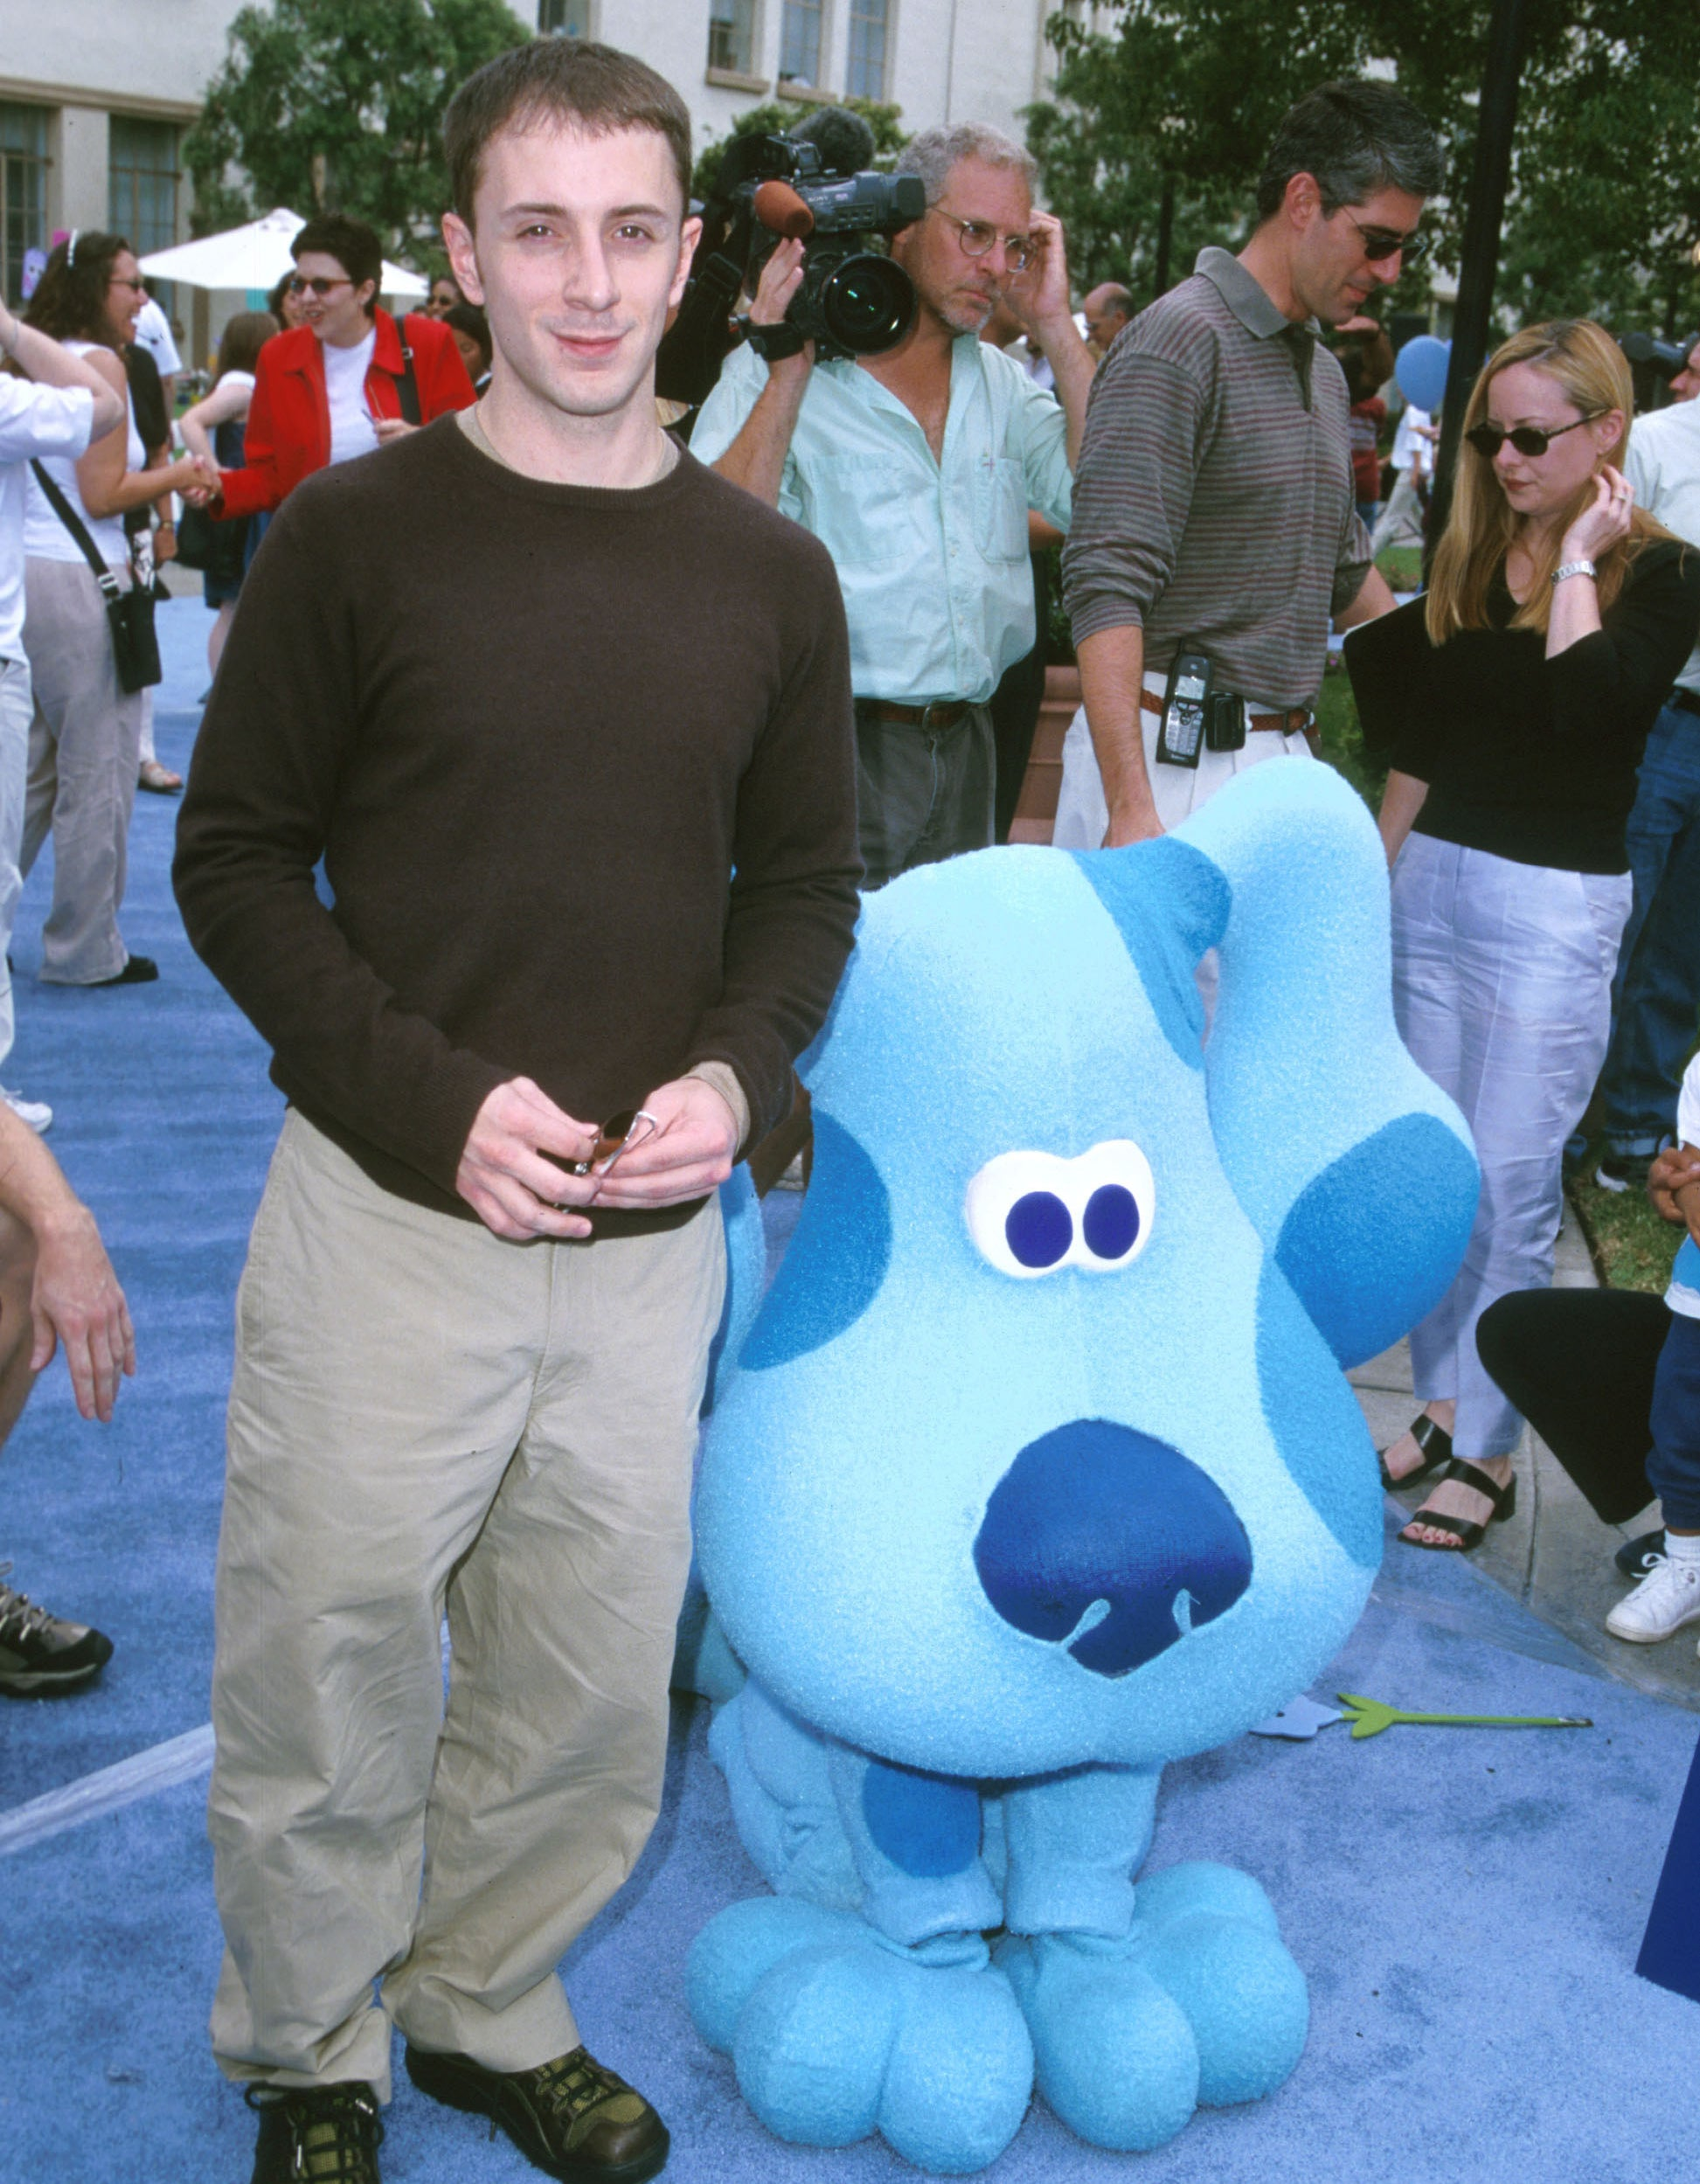 Steve standing on a blue carpet at an event next to a life-size Blue mascot